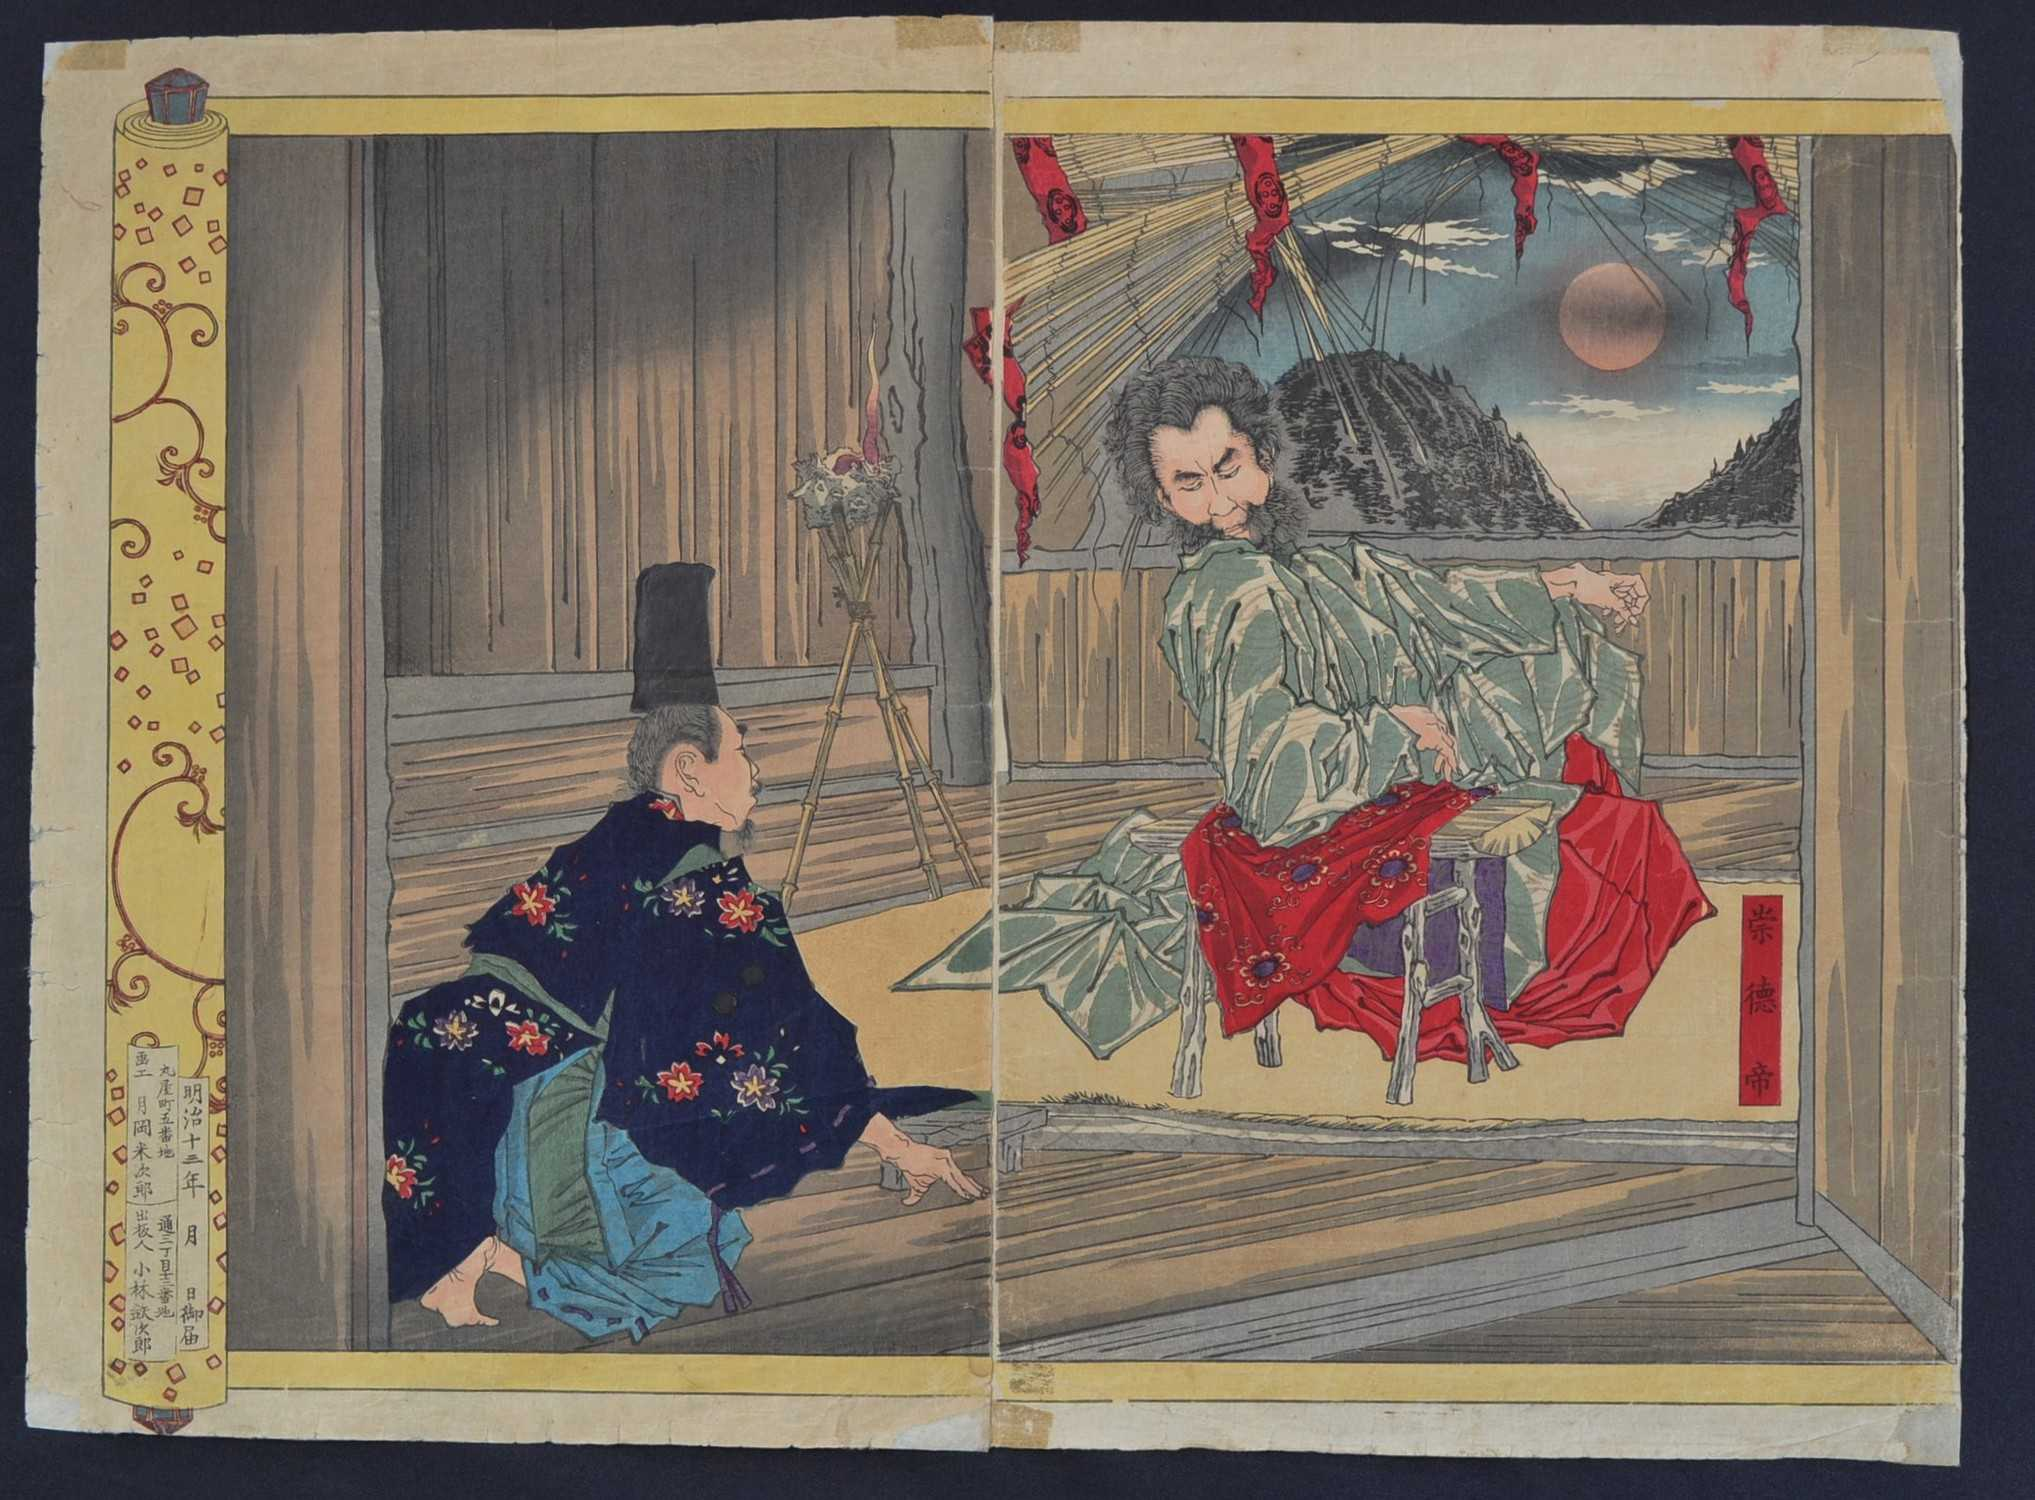 TAISO YOSHITOSHI: #P3612 TWO PANELS OF A VERY RARE TRYPTICH SCENE - 1864 to 1870